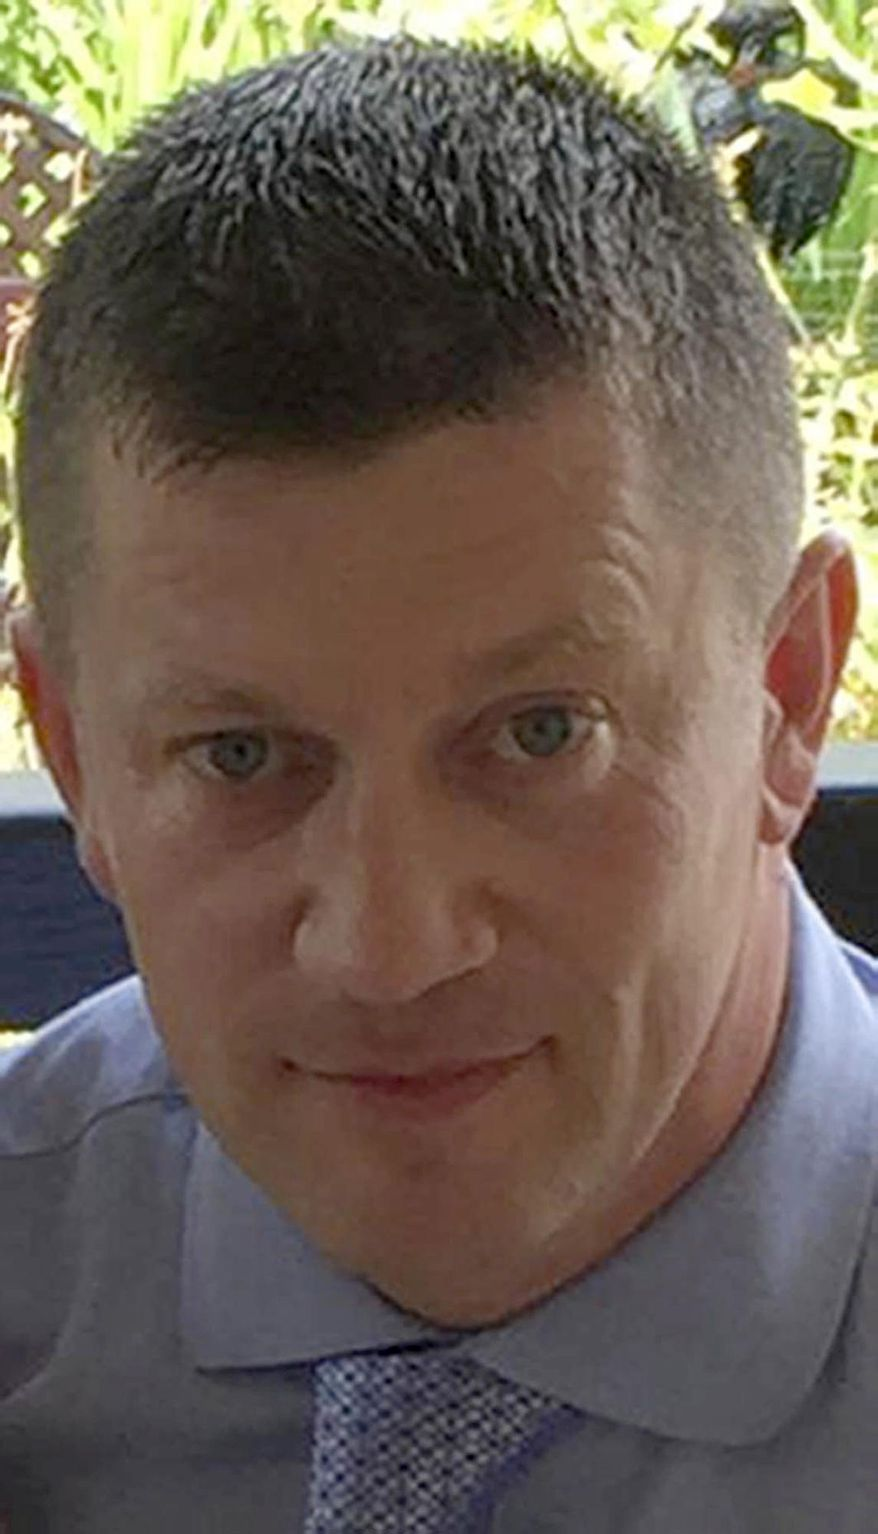 "Undated handout photo released by Metropolitan Police on Wednesday, March 22, 2017 of police officer Keith Palmer who was killed during the attack on the Houses of Parliament in London. A knife-wielding man went on a deadly rampage in the heart of Britain's seat of power Wednesday, plowing a car into pedestrians on London's Westminster Bridge before stabbing a police officer to death inside the gates of Parliament. Five people were killed, including the assailant, and 40 others were injured in what Prime Minister Theresa May condemned as a ""sick and depraved terrorist attack."" (Metropolitan Police via AP)"